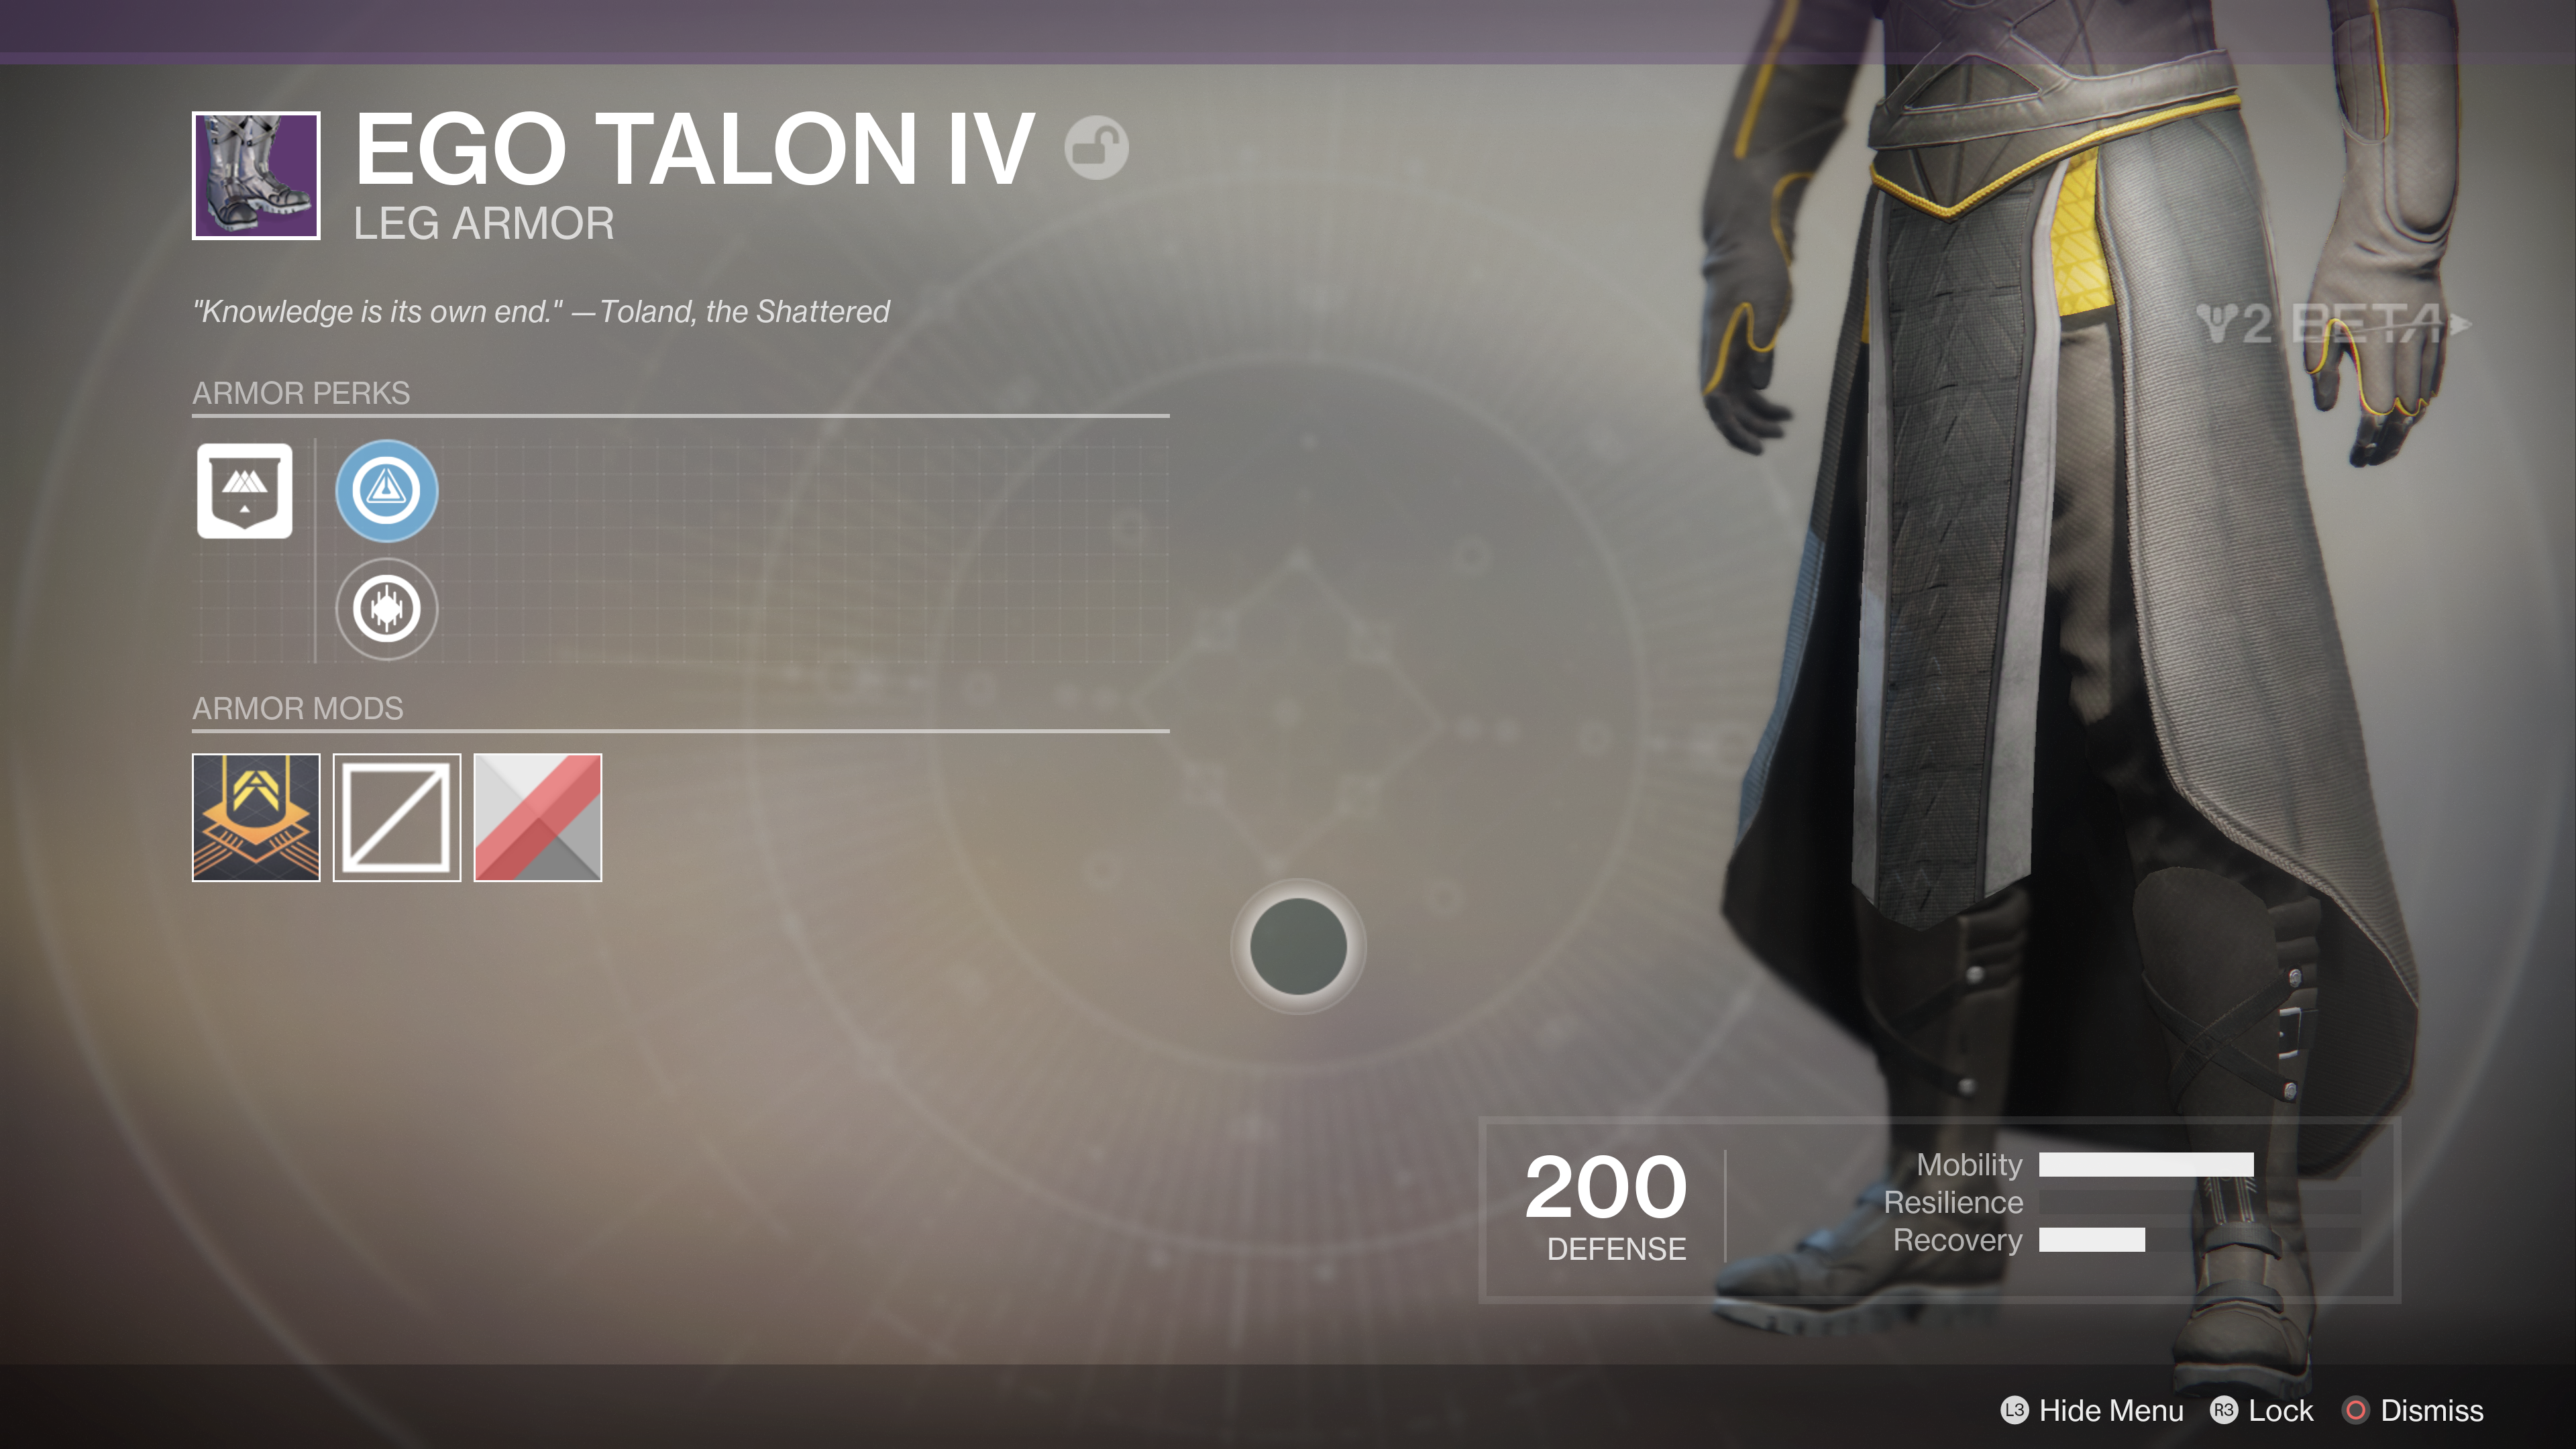 destiny 2 beta ego talon IV leg armour